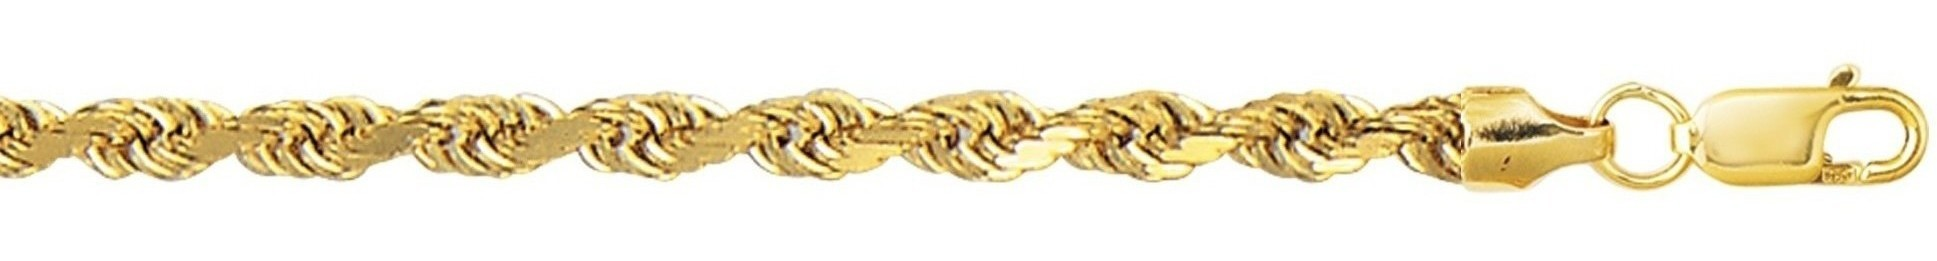 "8"" 10K Yellow Gold 4.0mm (1/6"") Polished Diamond Cut Hollow Sparkle Rope Chain w/ Lobster Clasp"